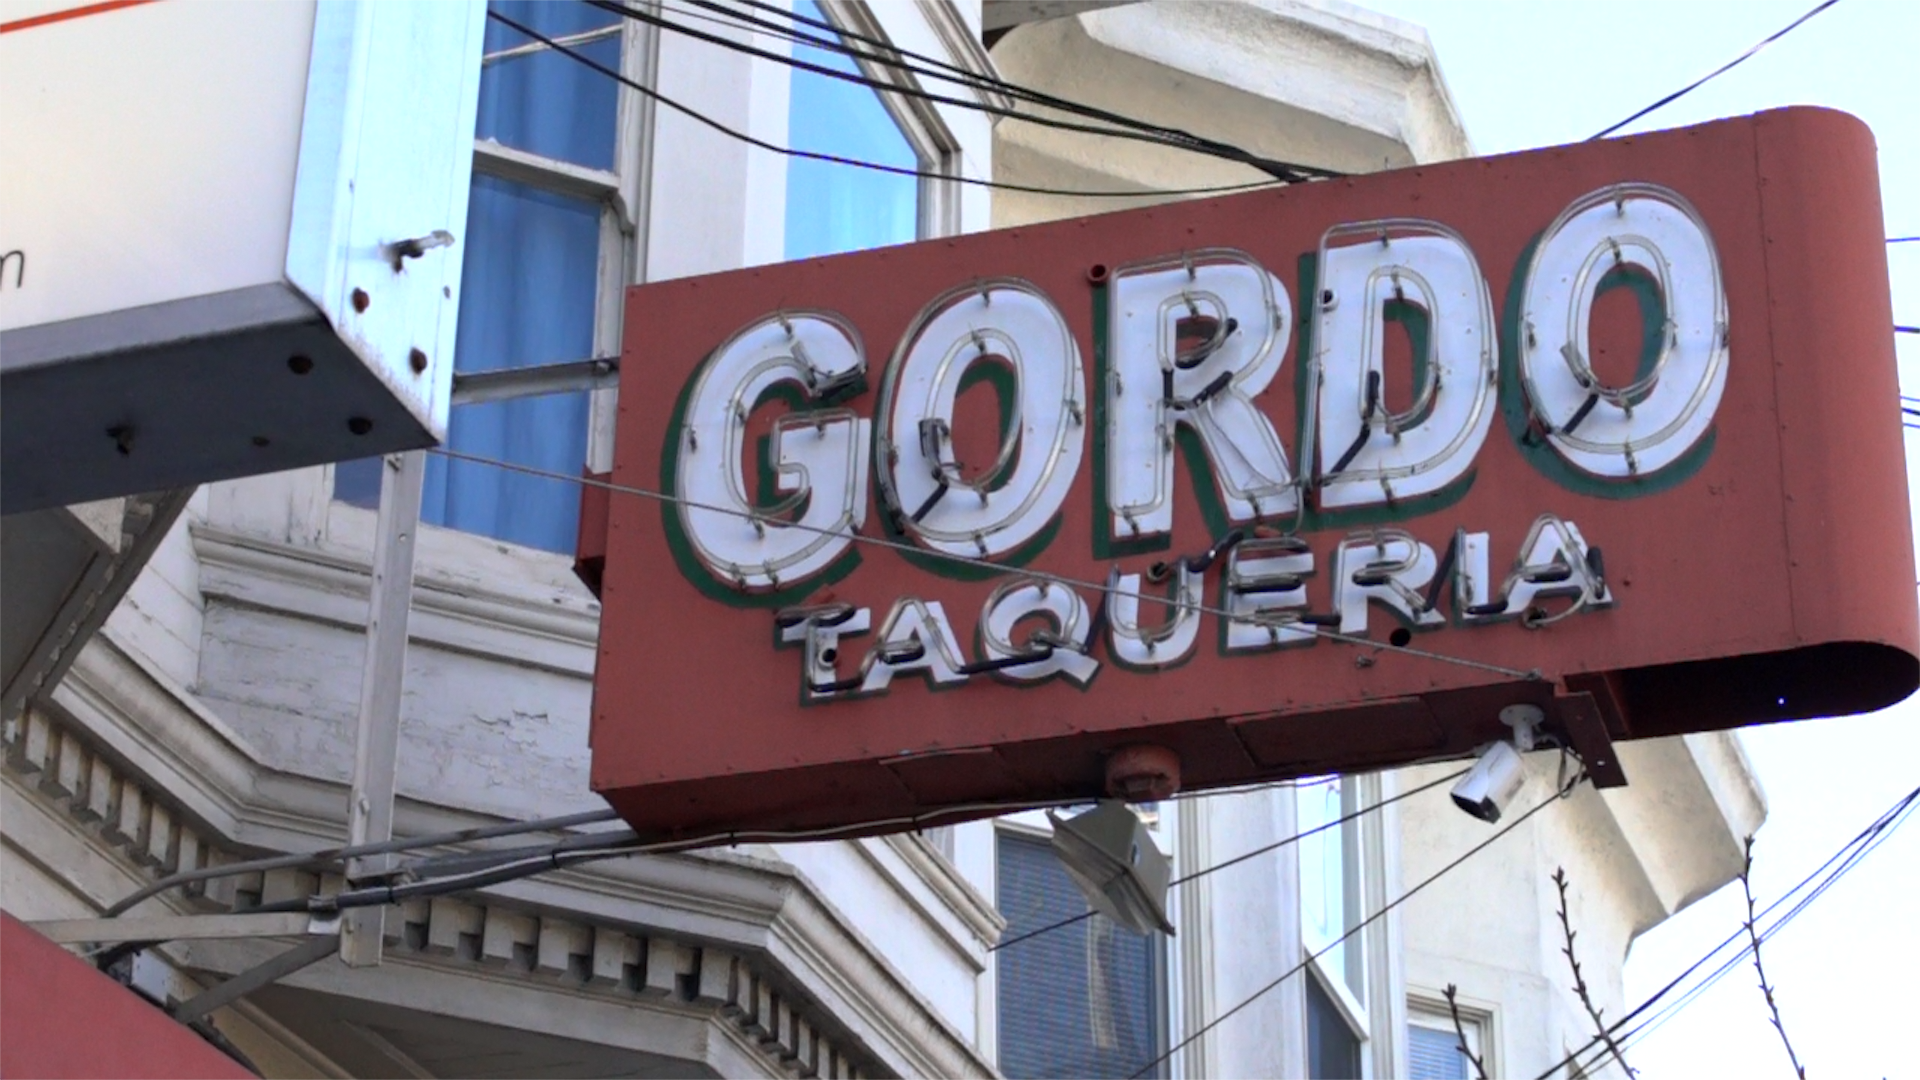 Gordo Taqueria: Through the Generations